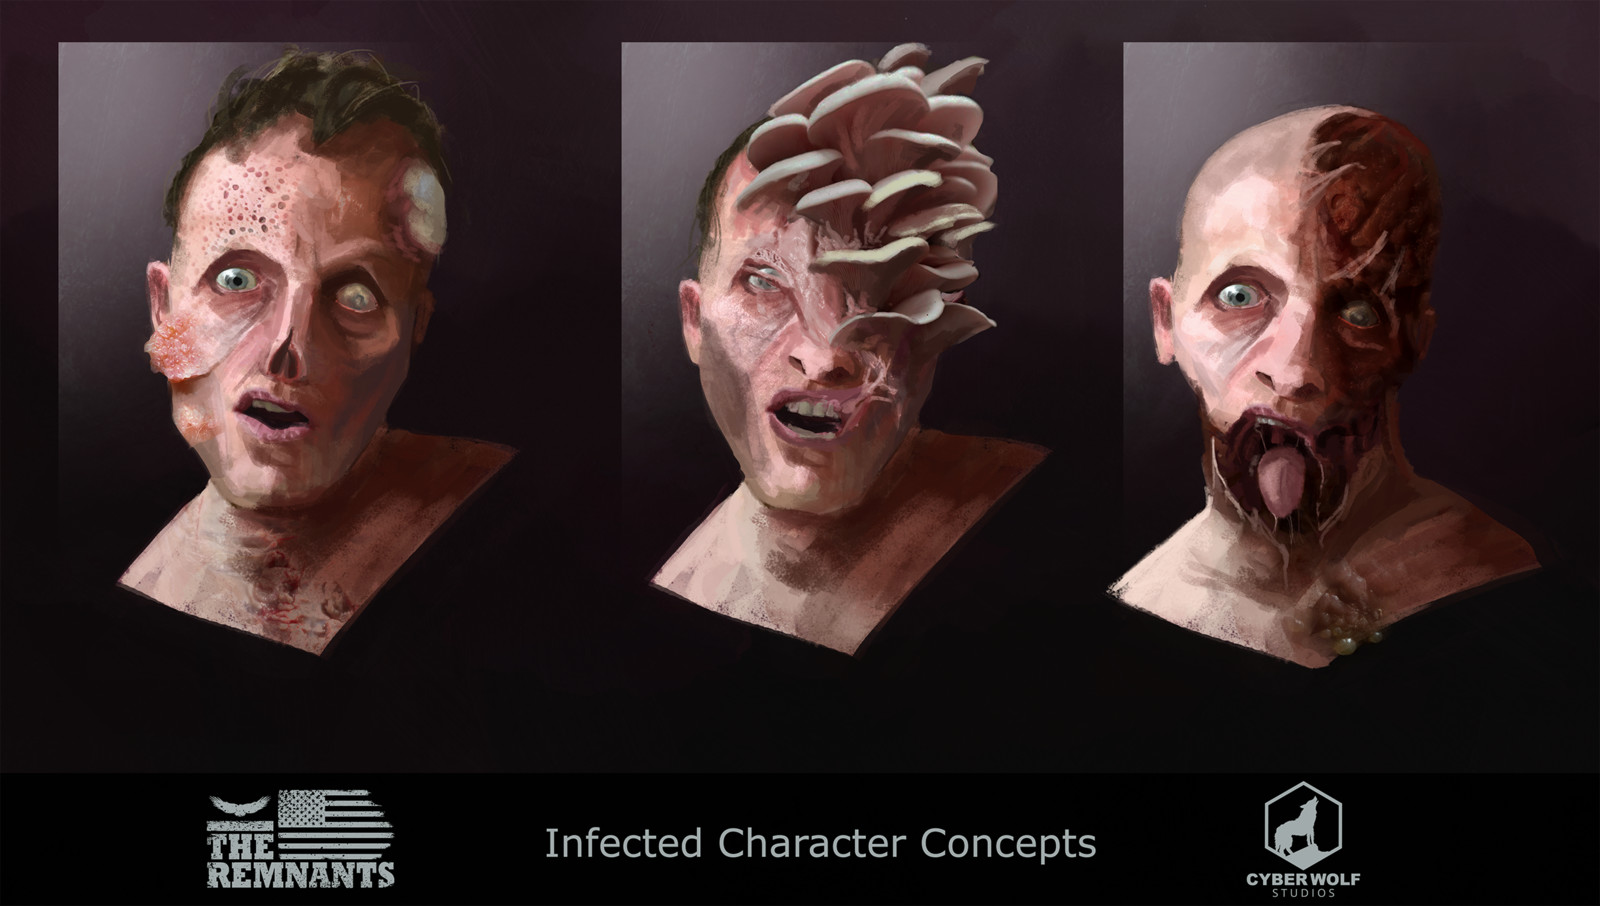 Infected Concepts